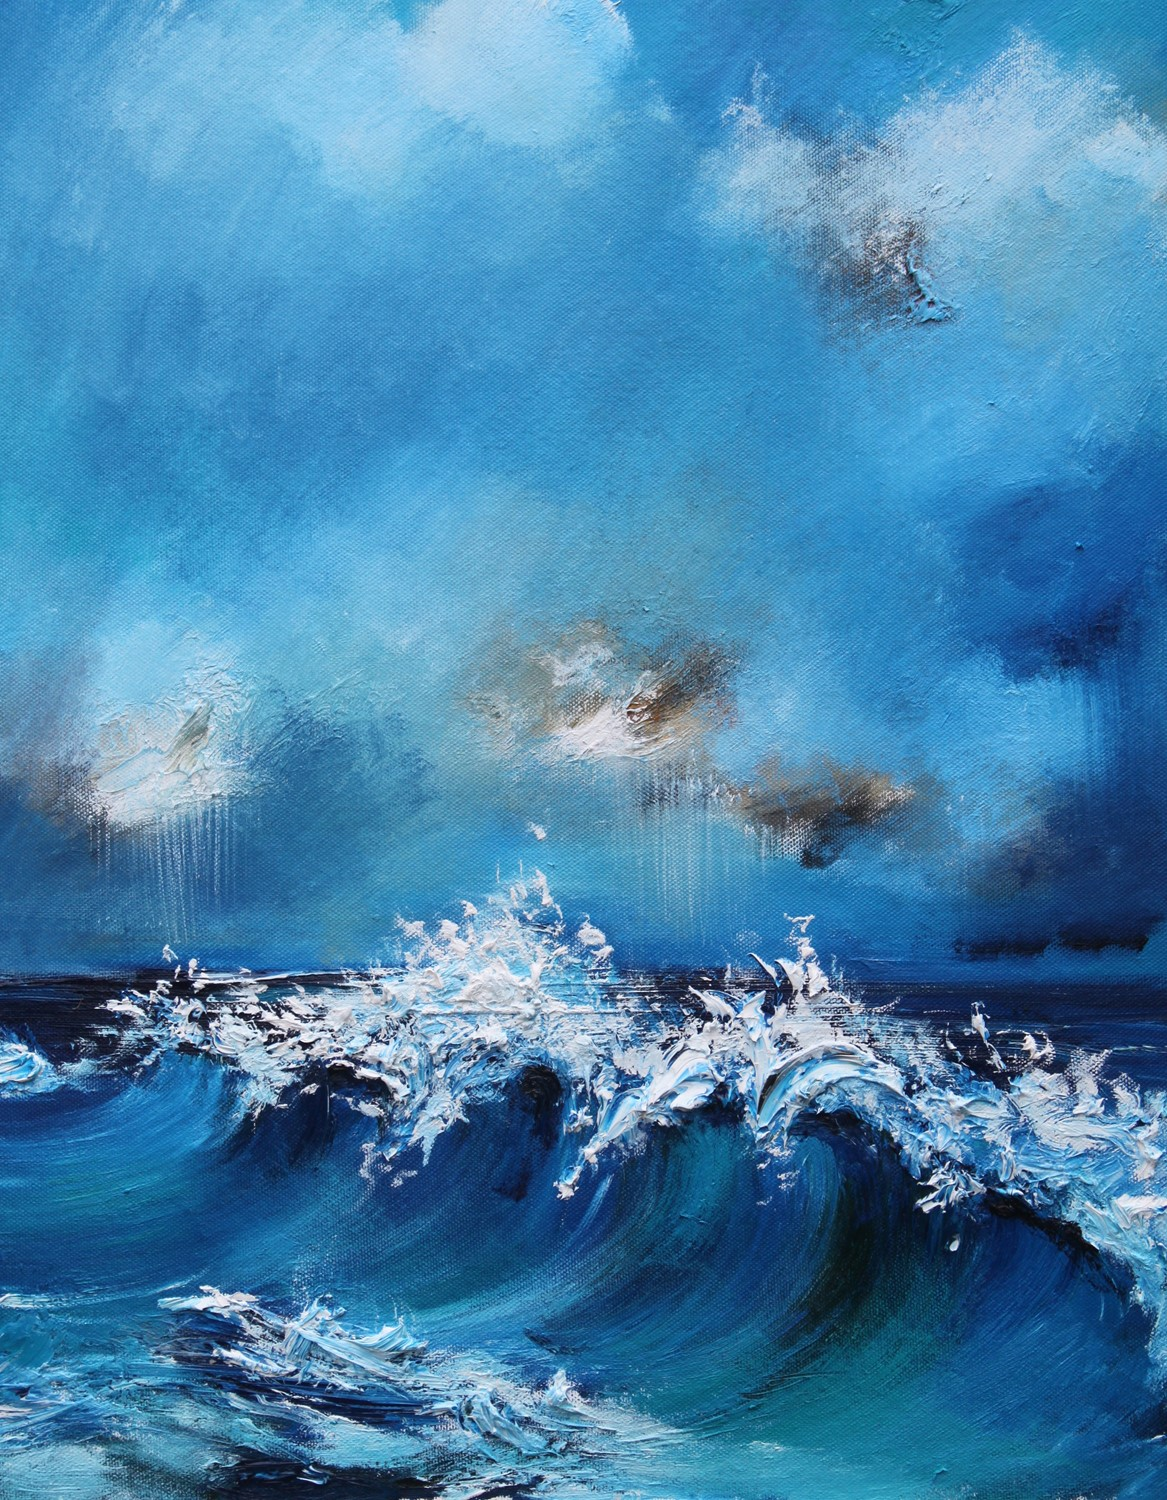 'Tumbling waves' by artist Rosanne Barr